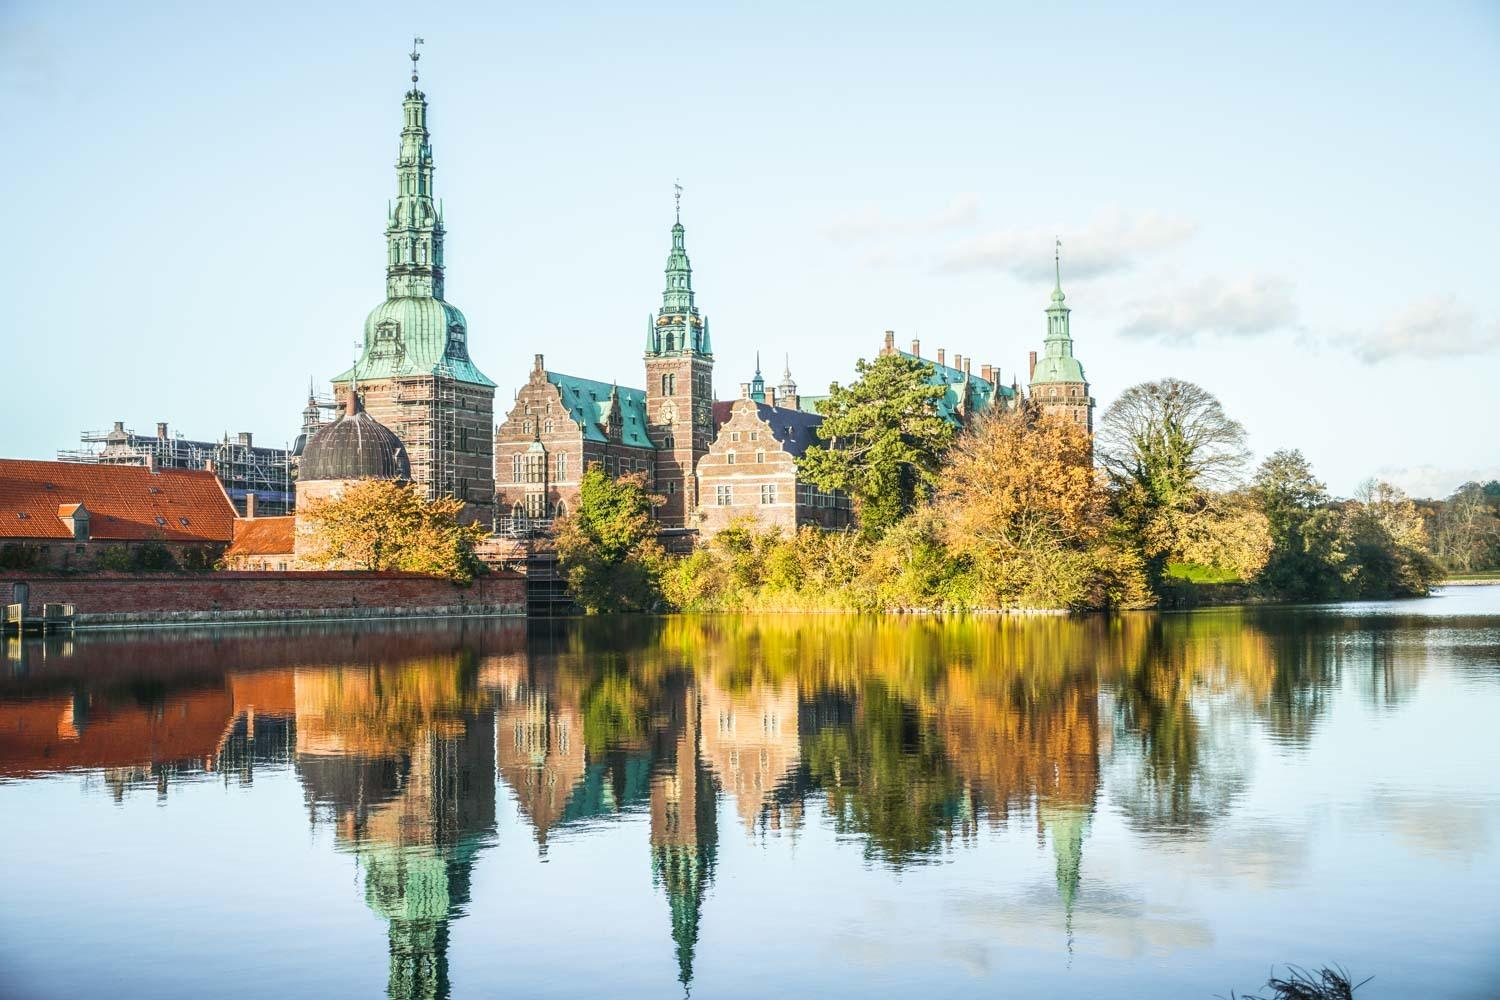 Frederiksborg from across the lake